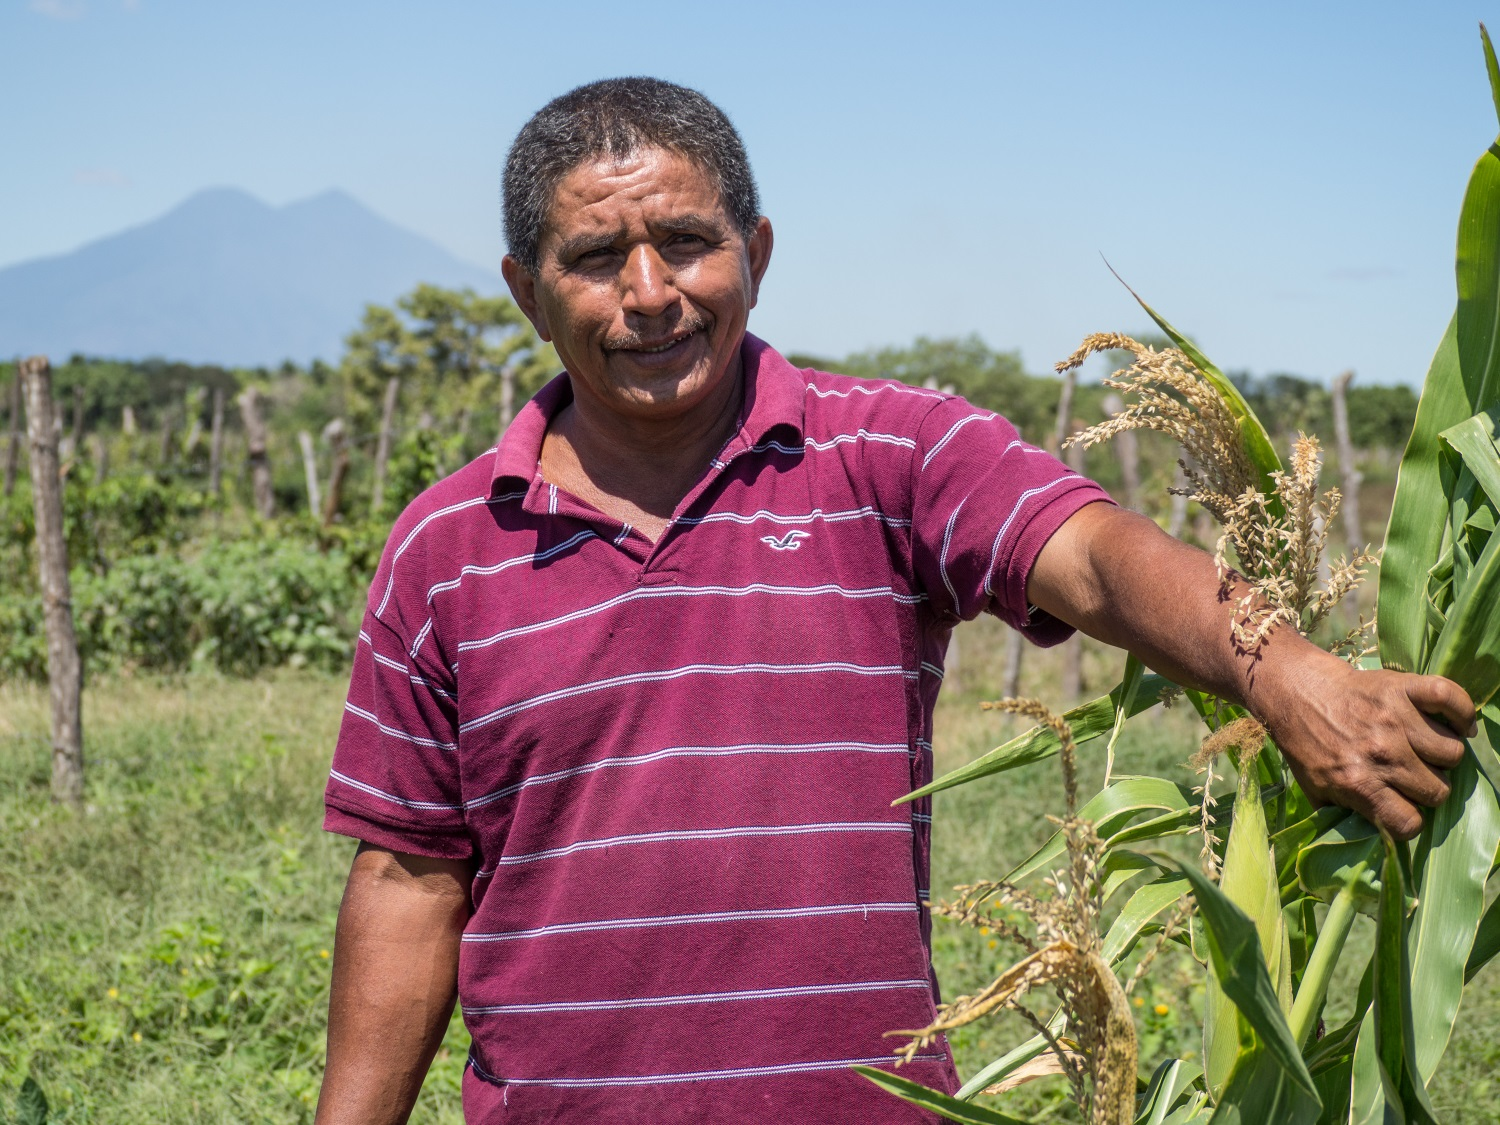 Filipe Cordova, a farmer in El Ranchón, displays his corn thanks to an Oxfam resilience program